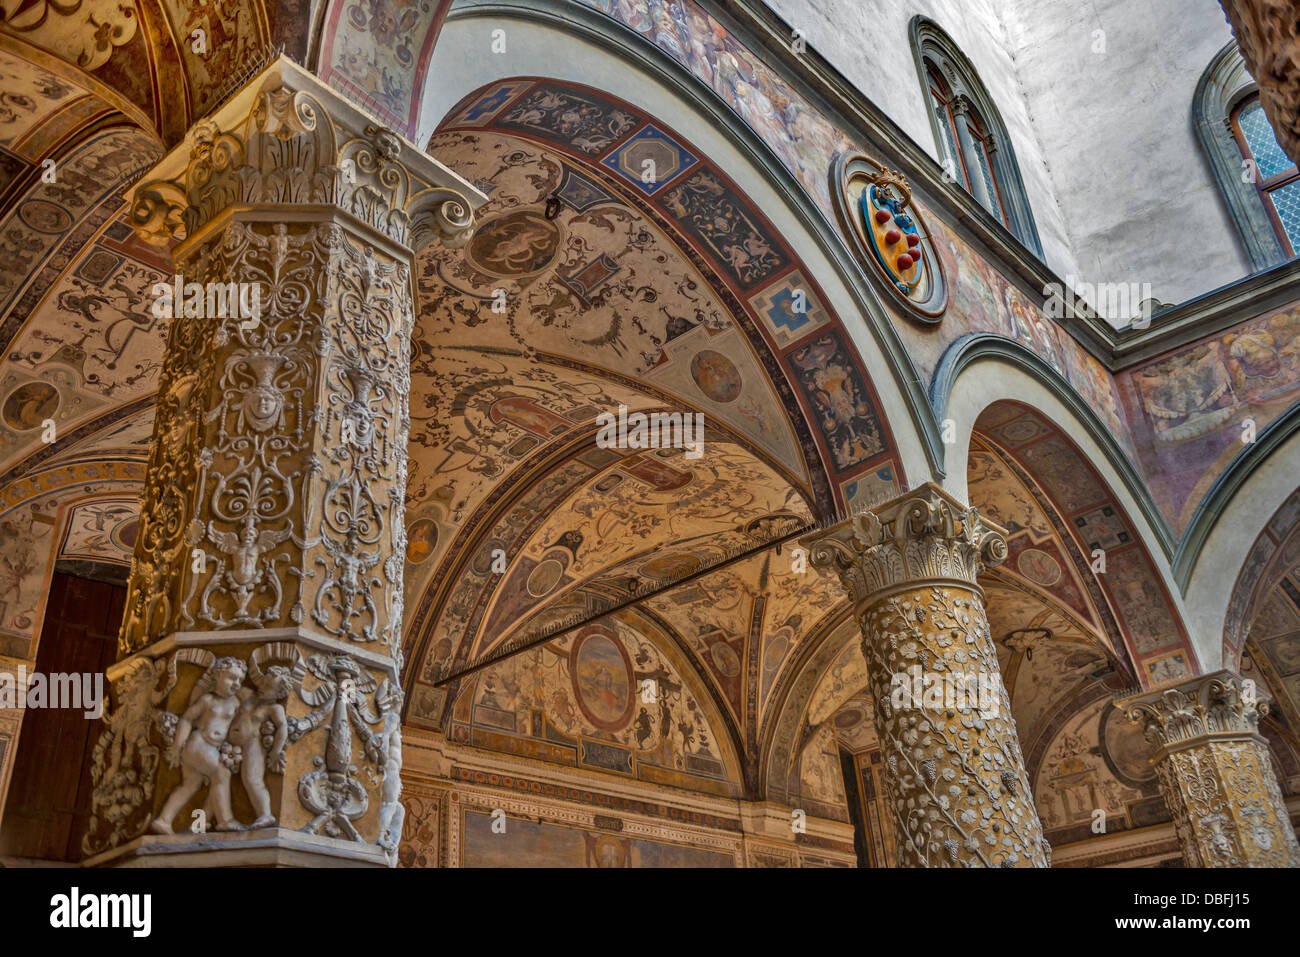 Arches of Palazzo Vecchio Florence Italy - Stock Image